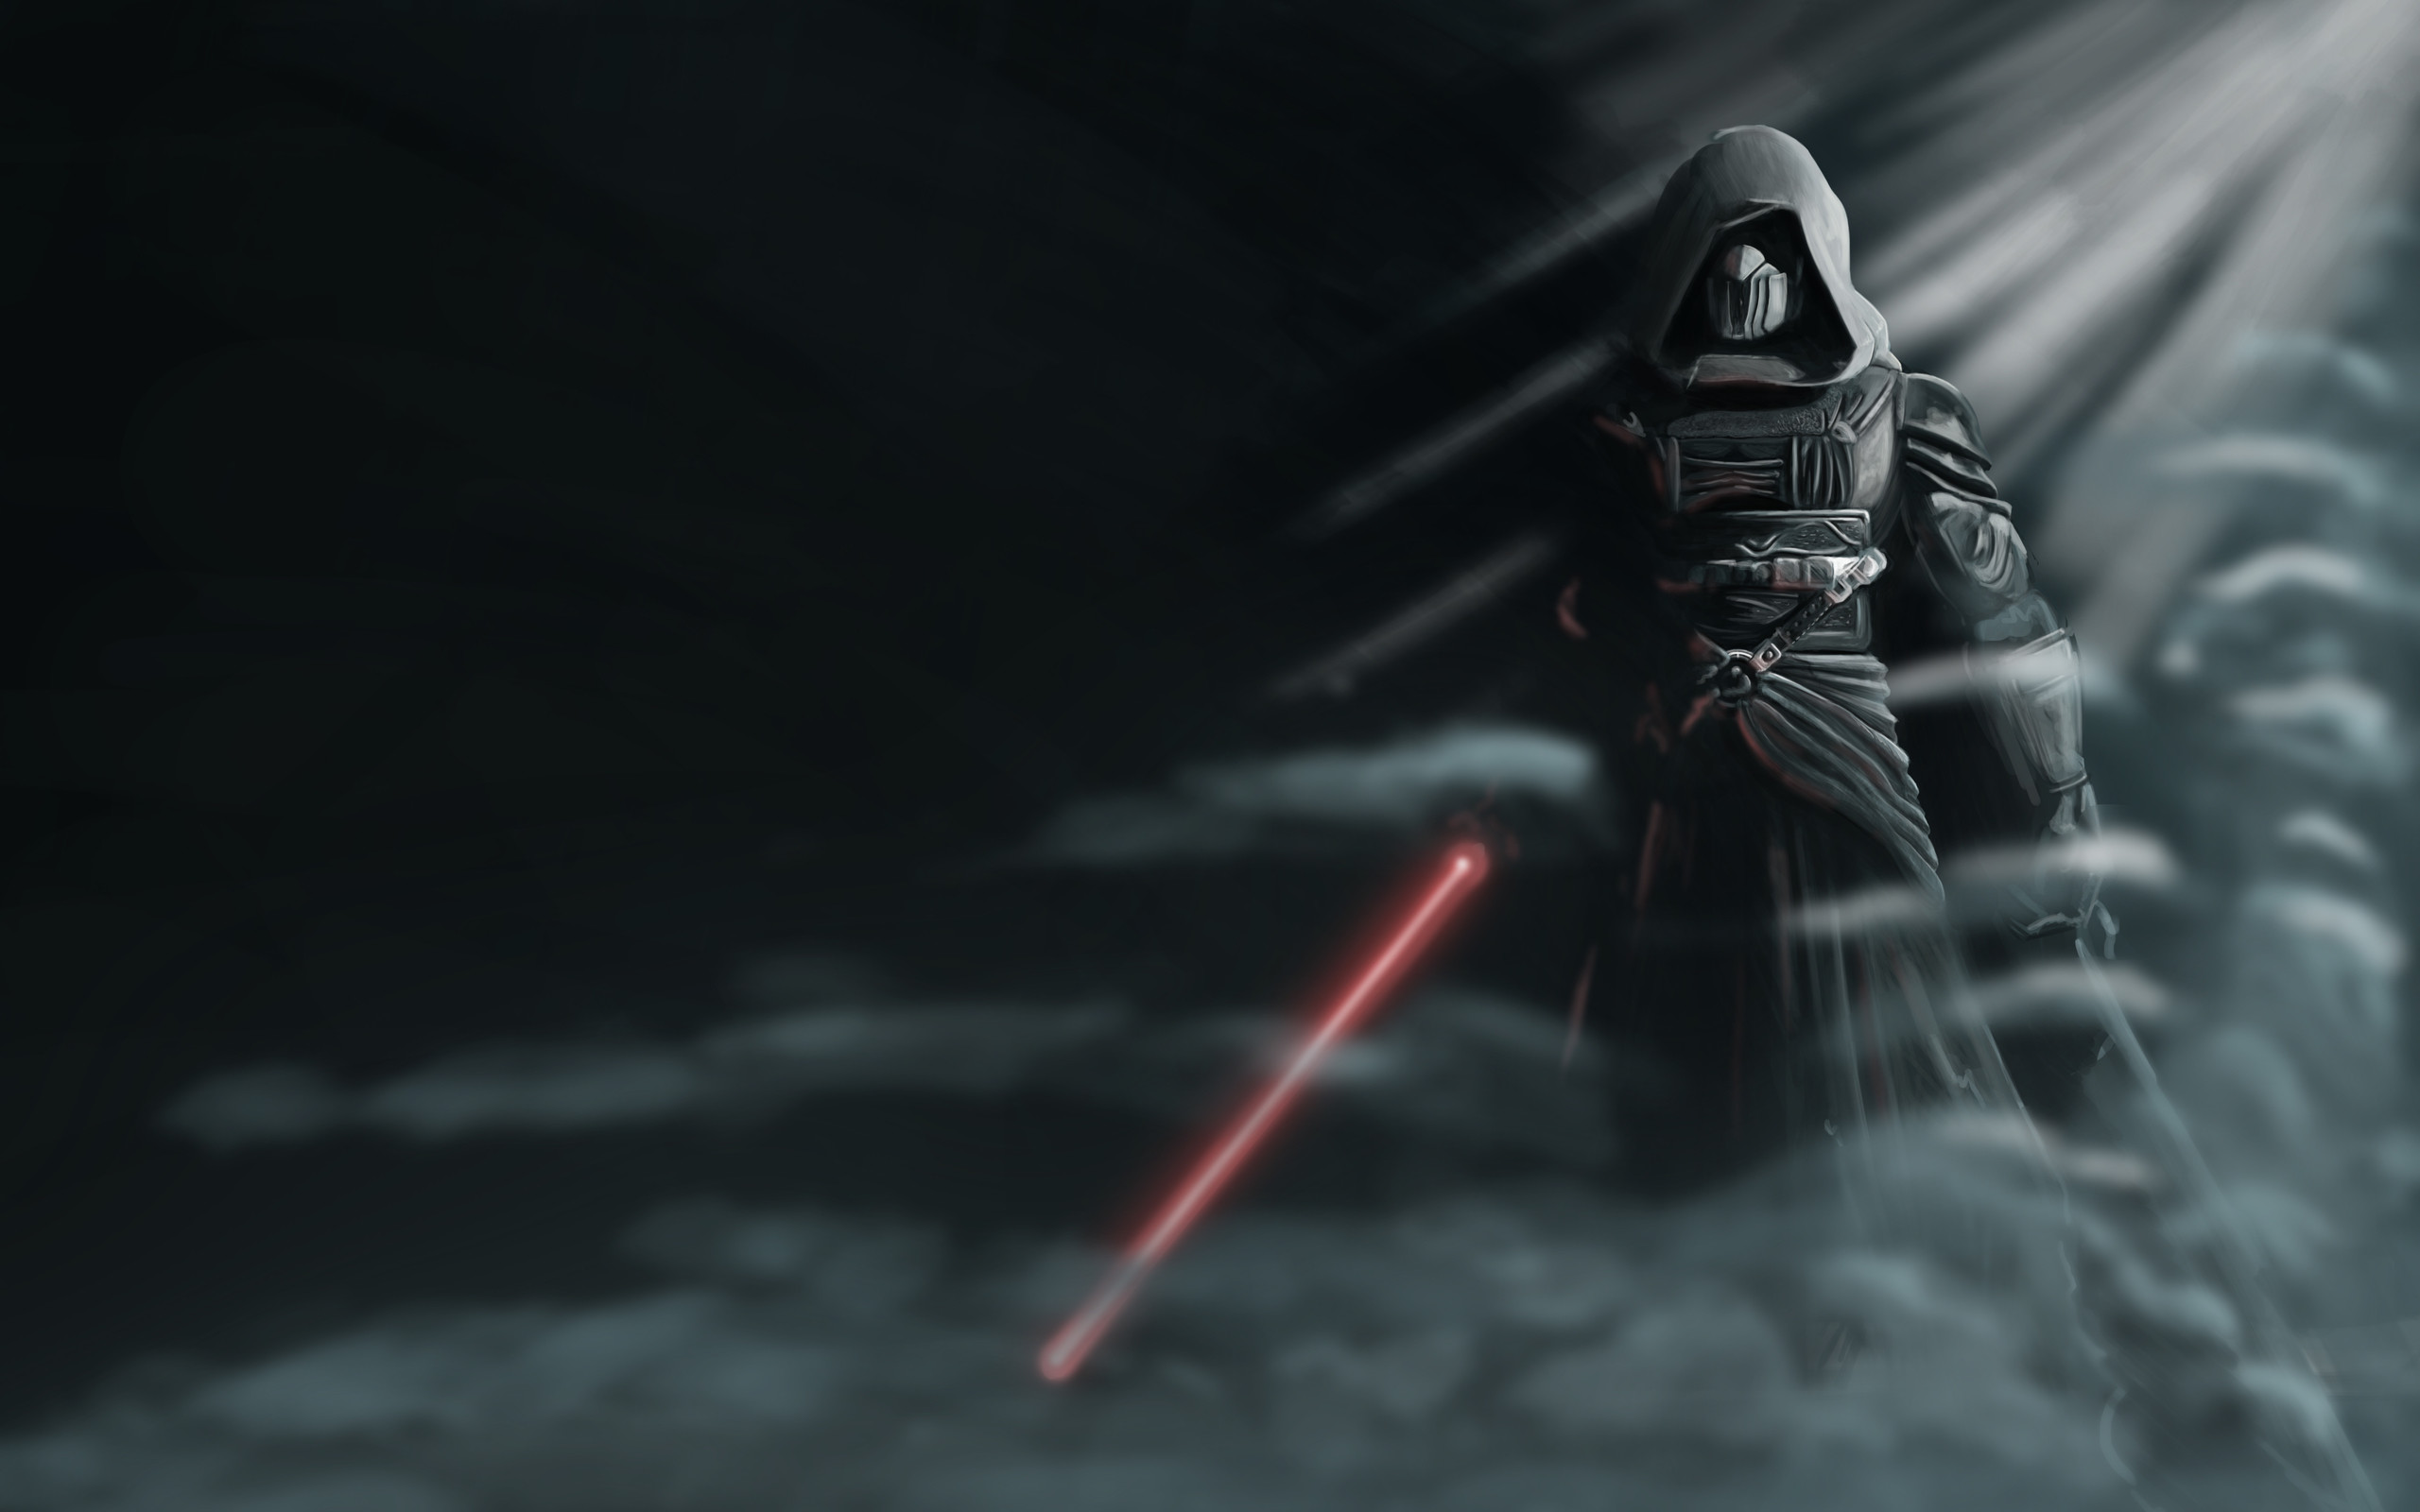 2560x1600 Wallpaper Abyss Explore the Collection Star Wars Sci Fi Star Wars .